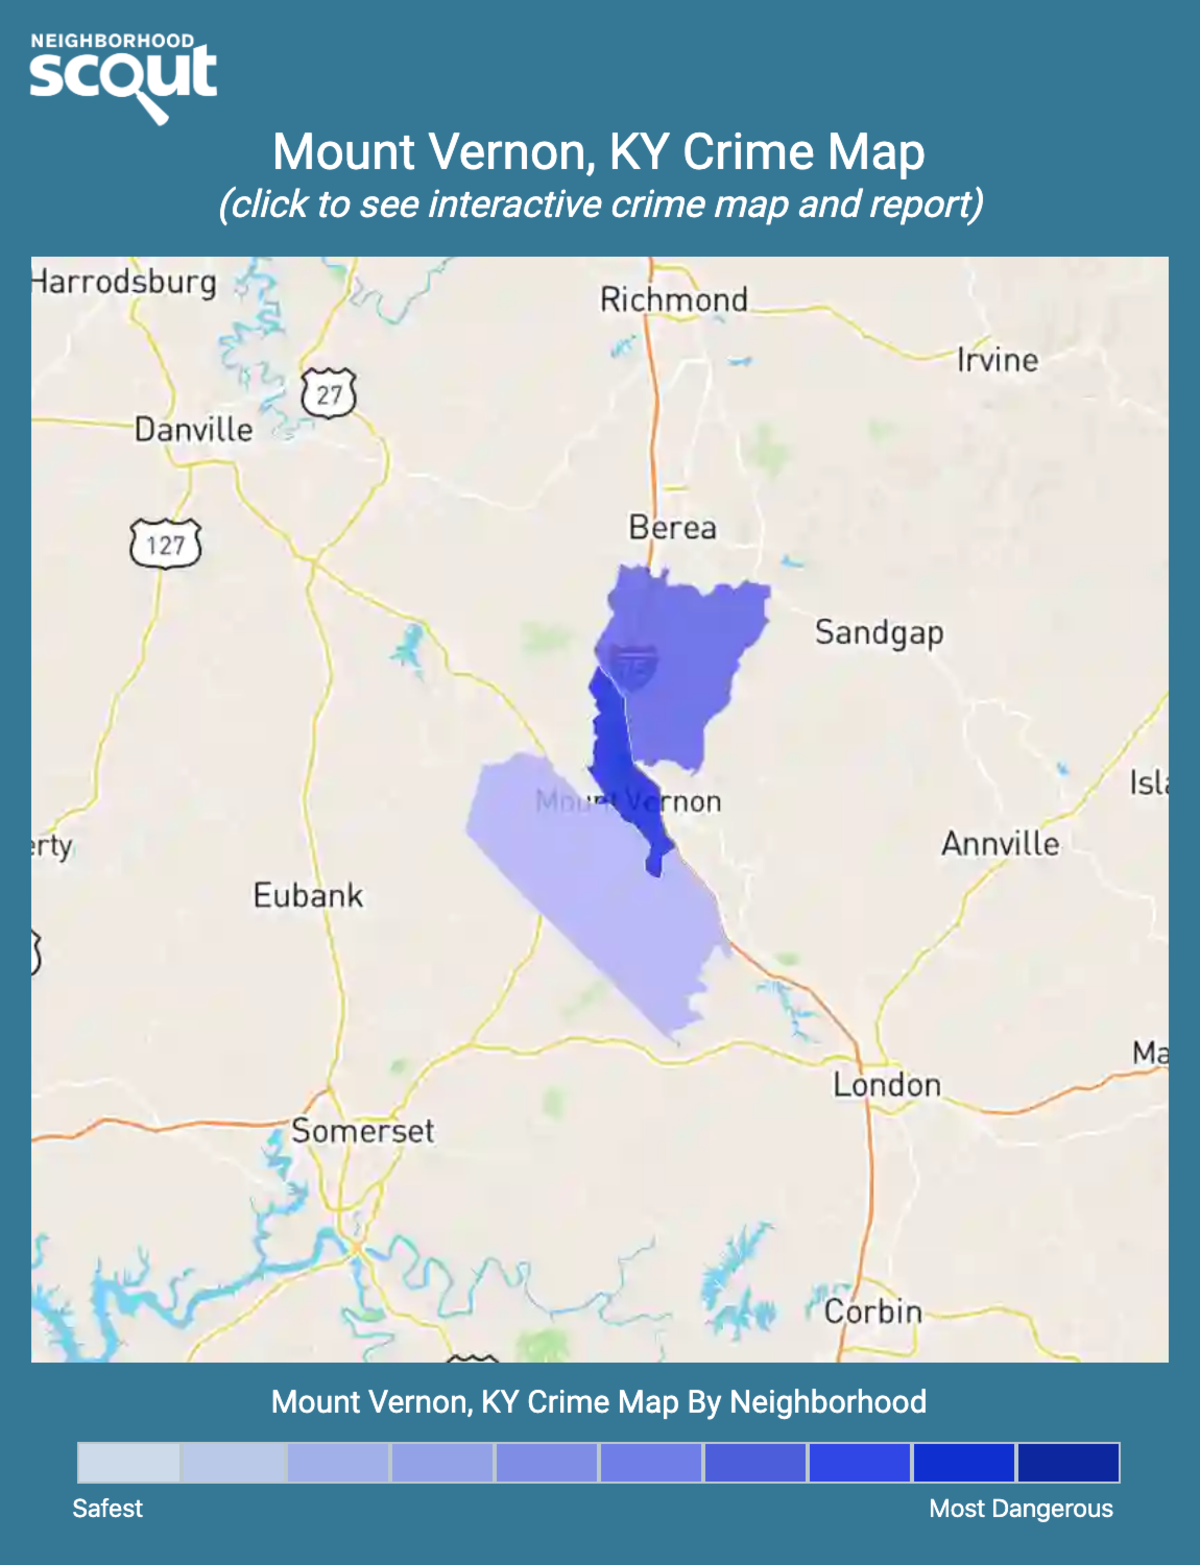 Mount Vernon Ky Crime Rates And Statistics Neighborhoodscout